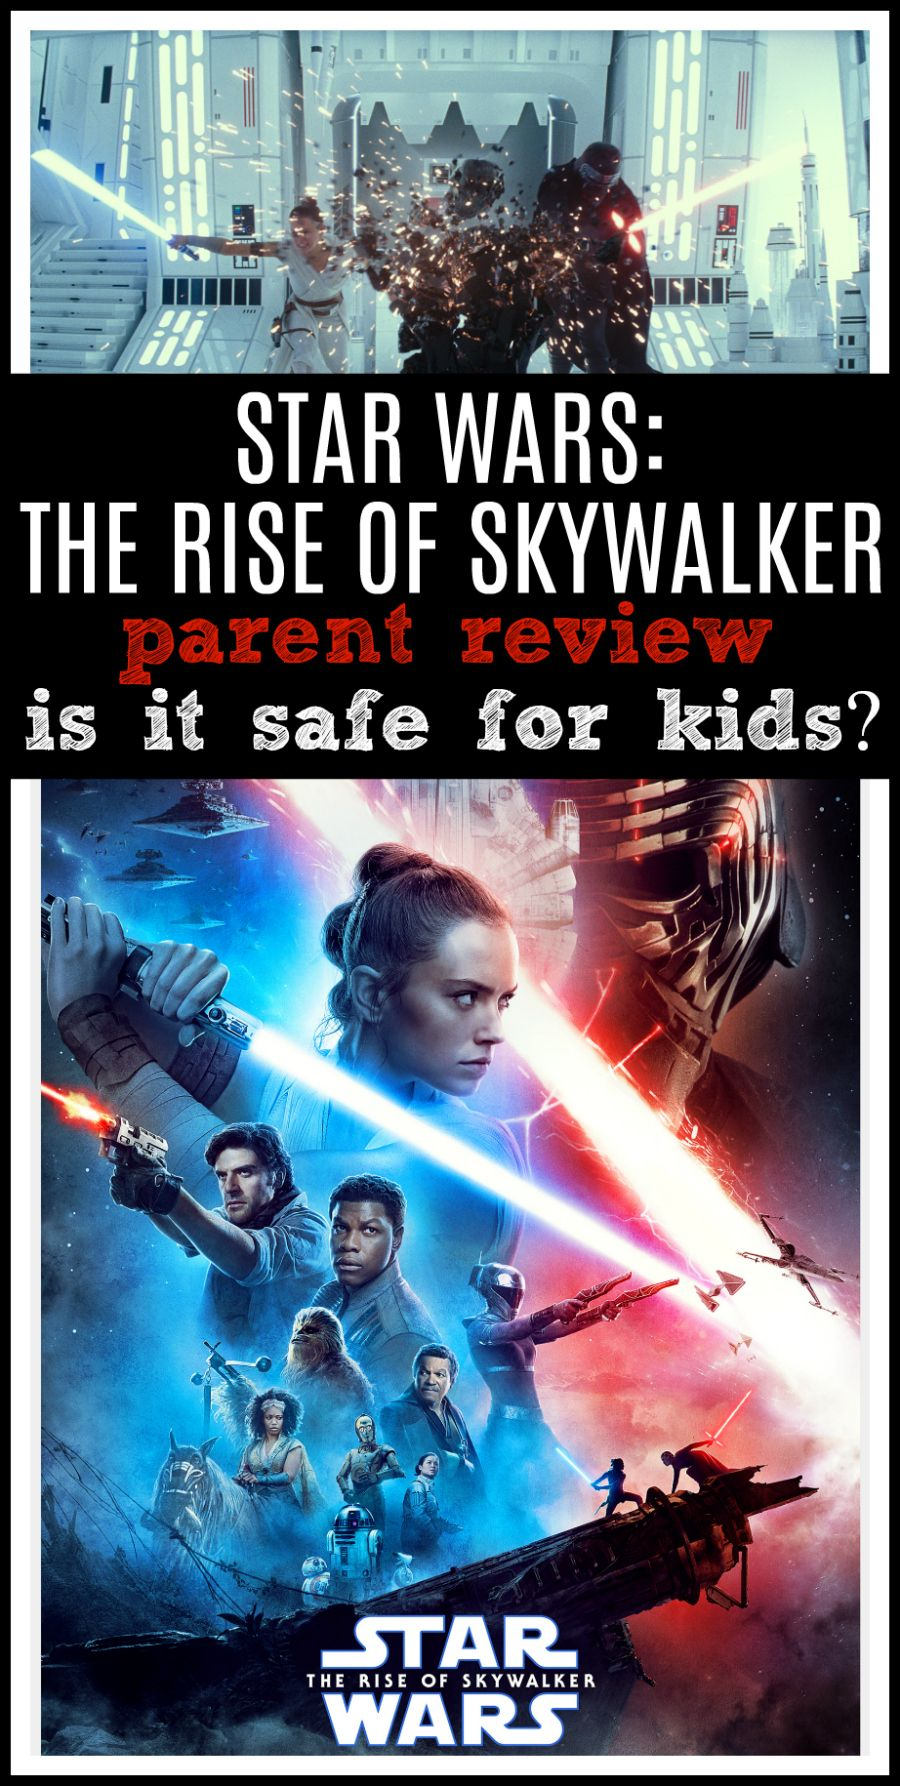 Star Wars The Rise of Skywalker Movie Review Star wars